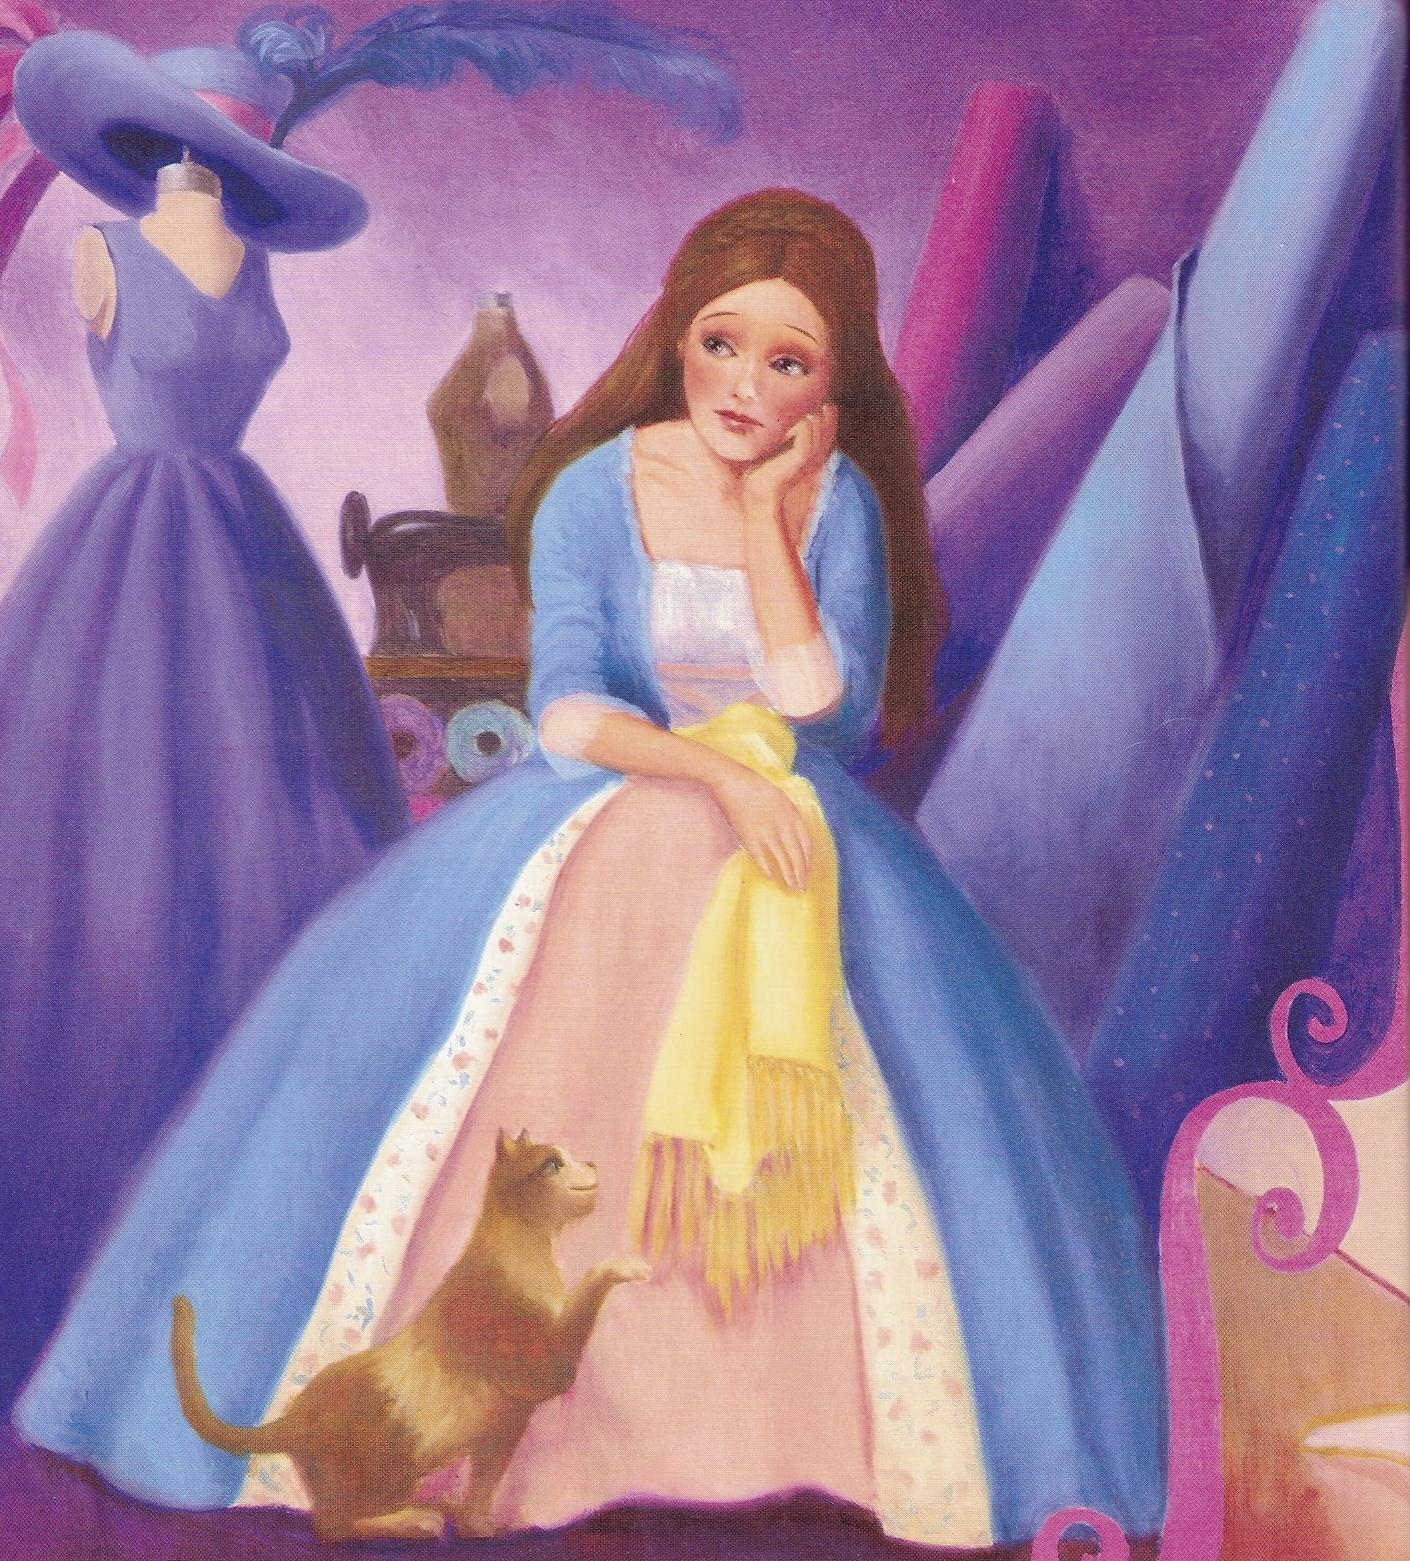 Princess And The Pauper Barbie Princess And The Pauper Foto 13817923 Fanpop